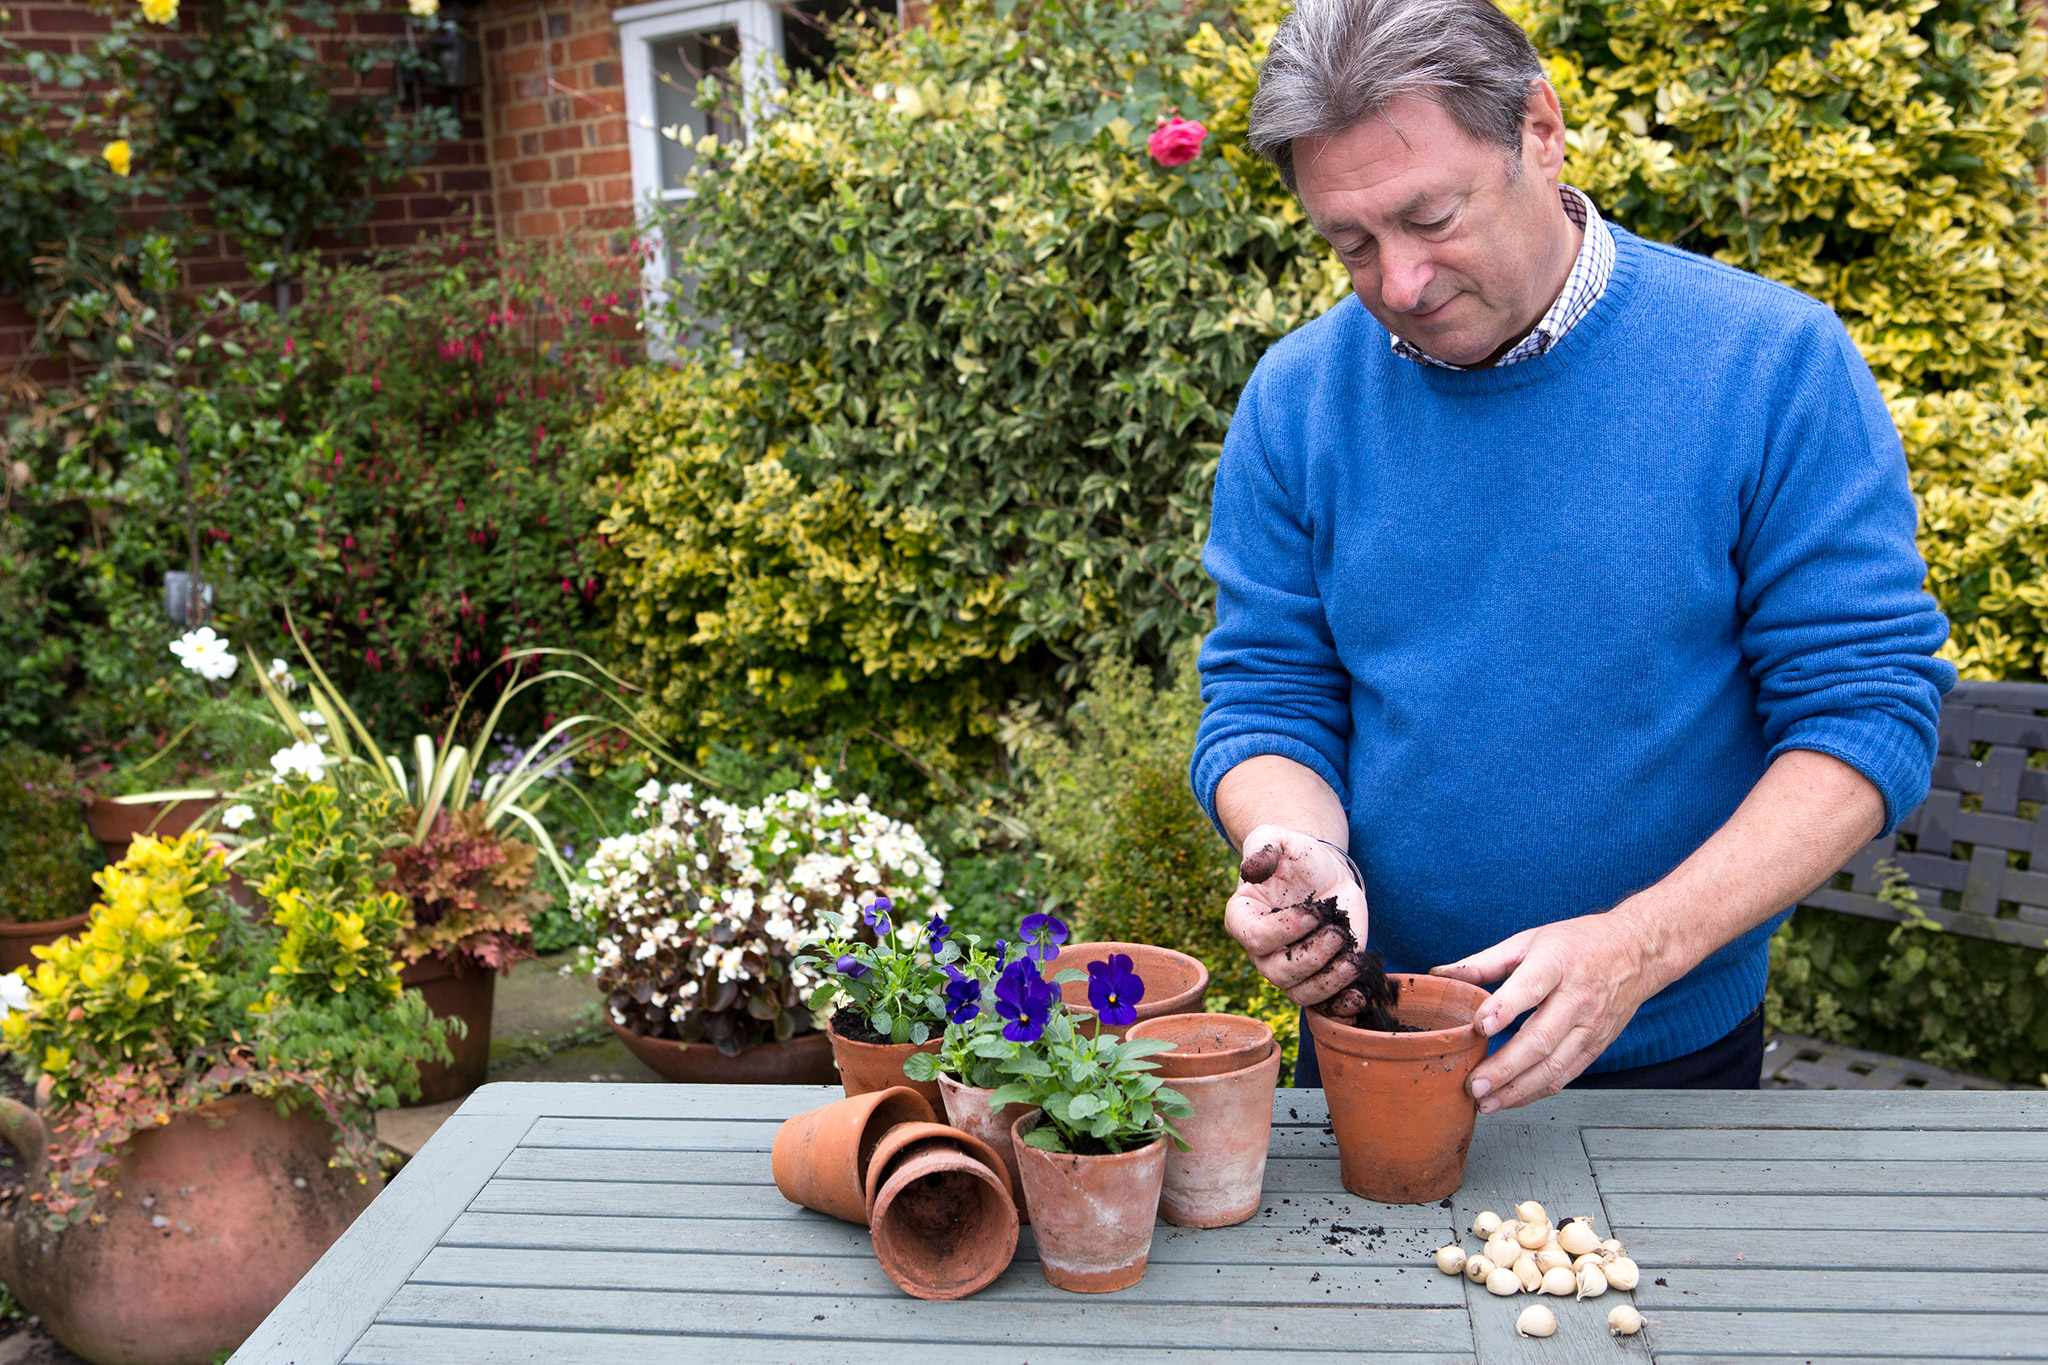 Alan Titchmarsh plants winter flowering iris bulbs